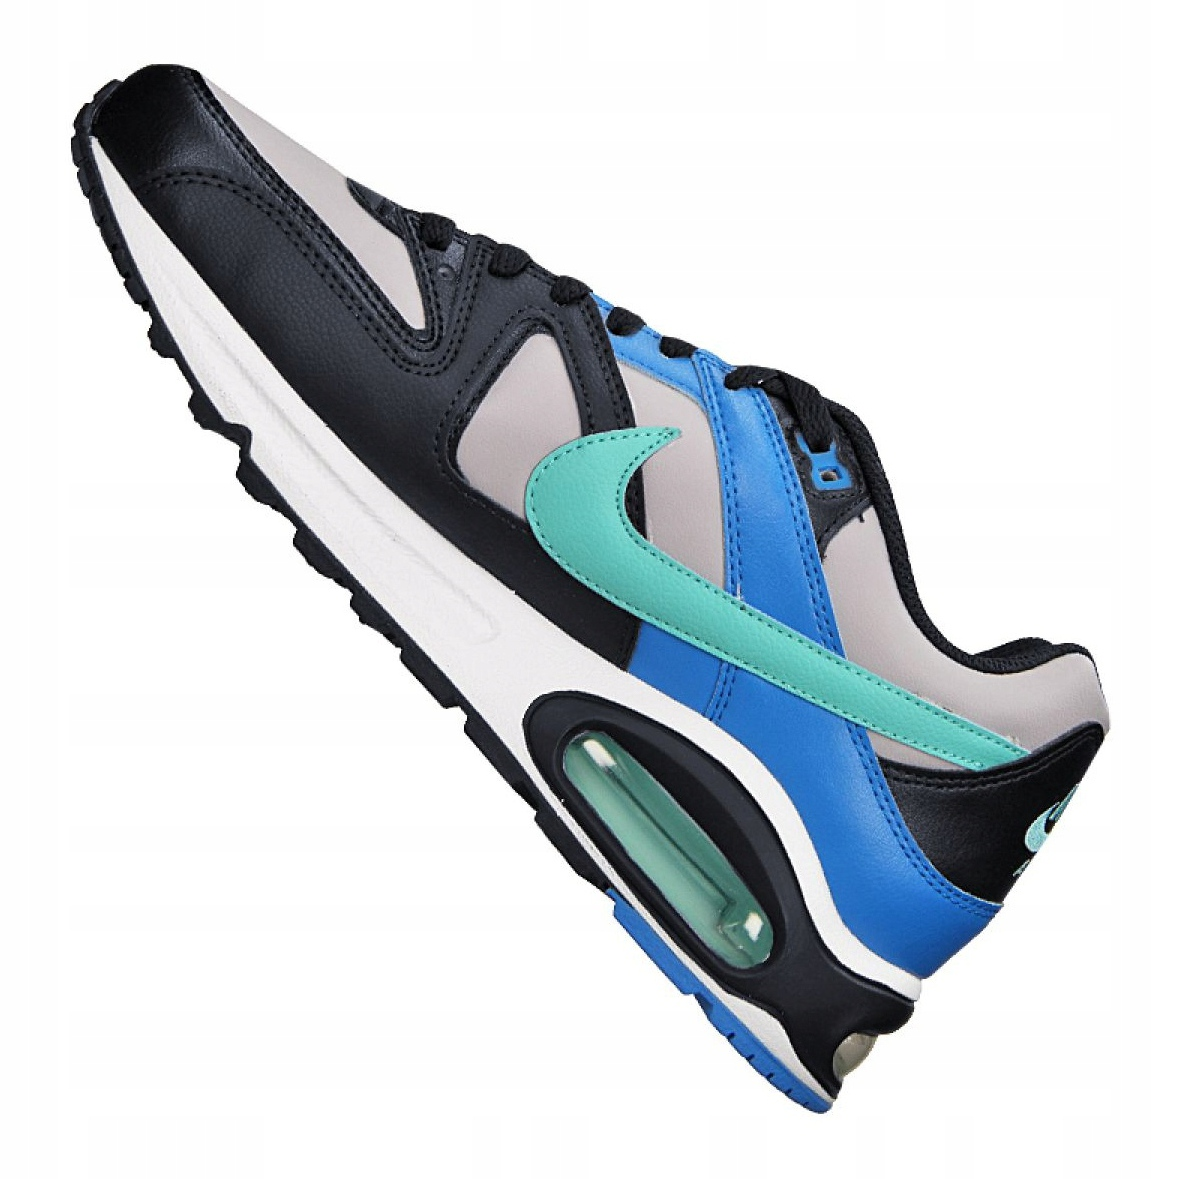 Zapatillas Nike Air Max Command M 629993 051 multicolor